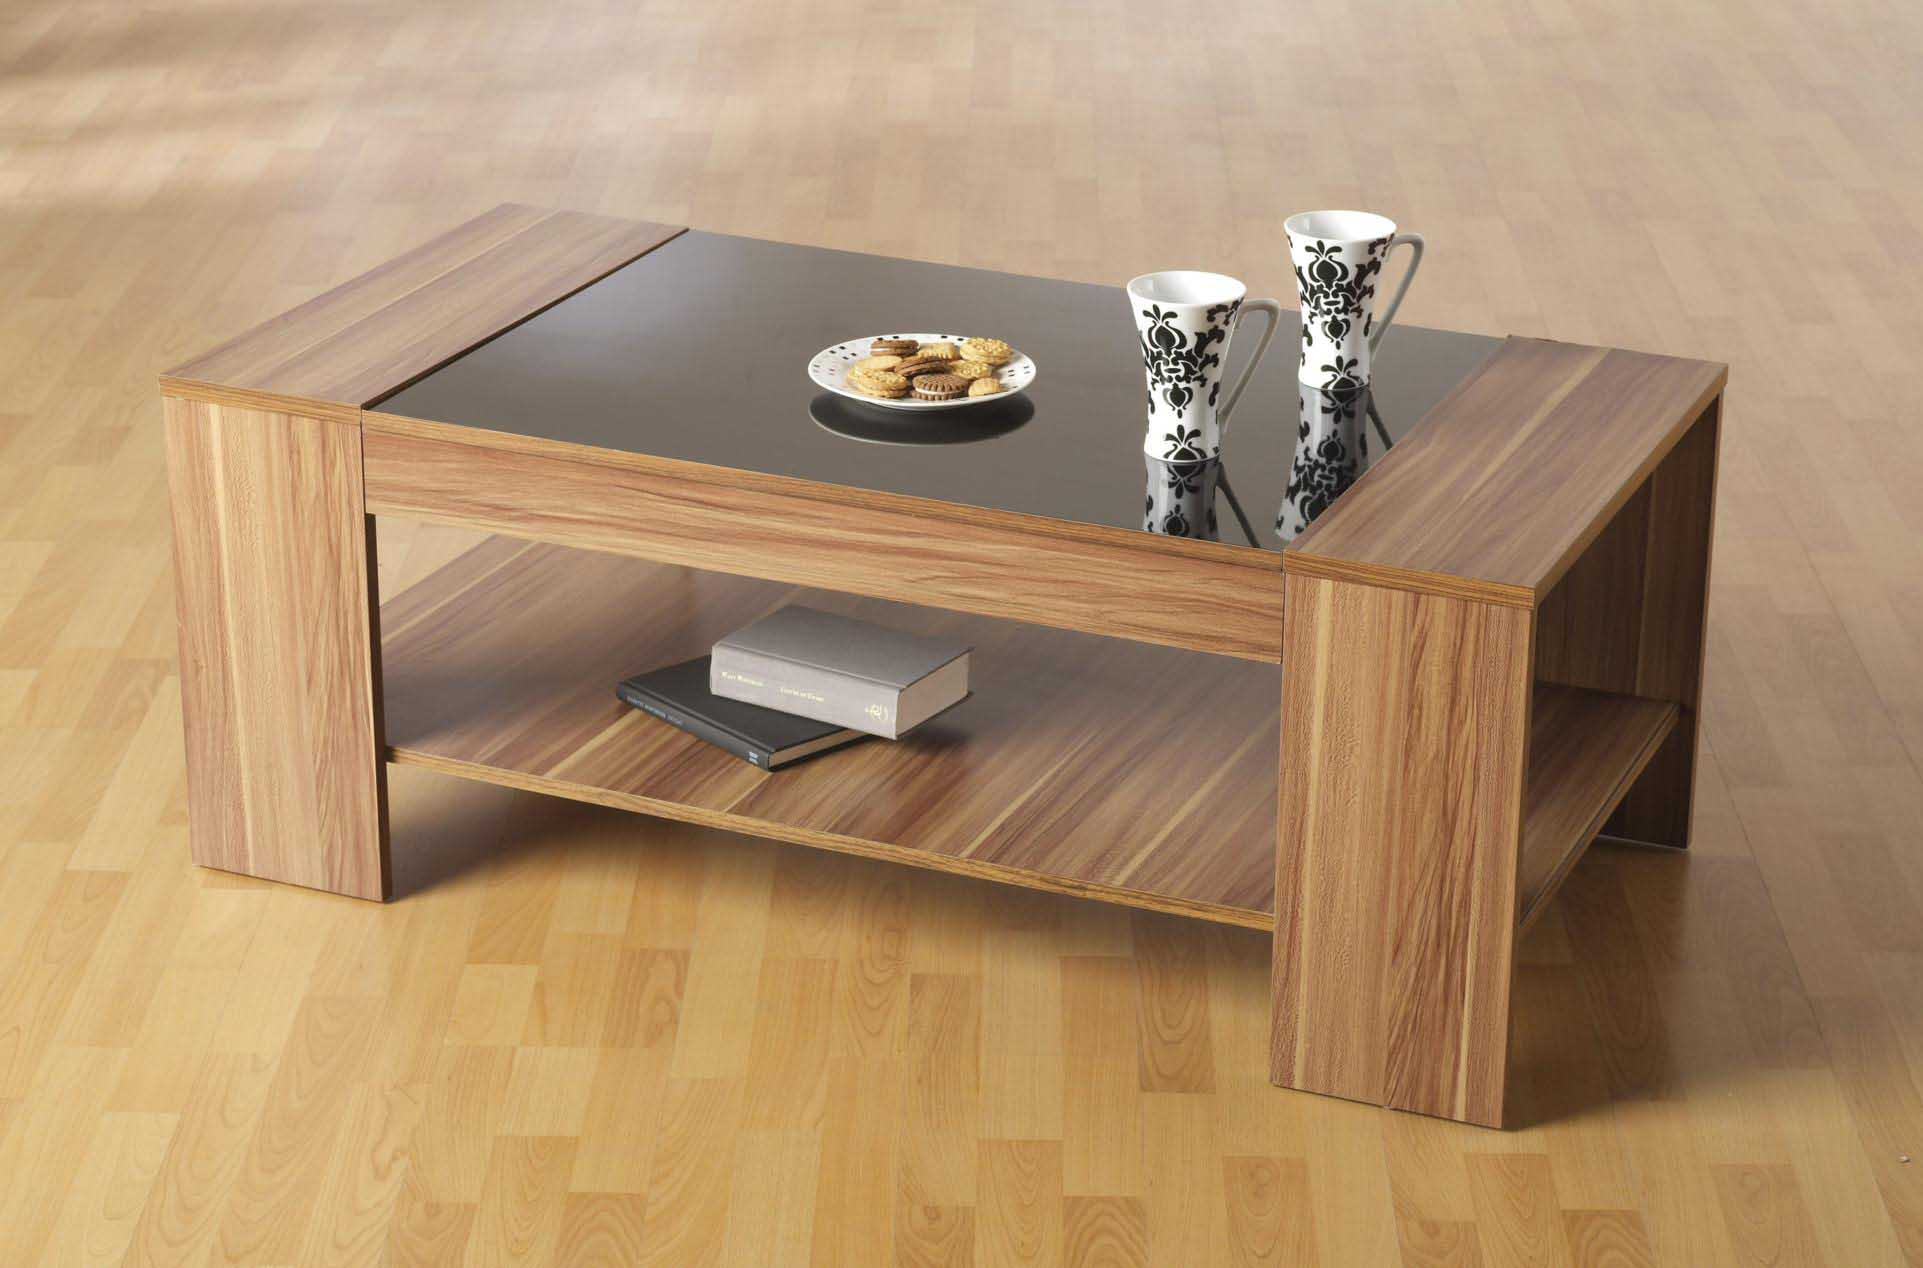 glass-wood-coffee-table-Nexo-Glass-Top-Coffee-Table-In-Light-Oak-and-Glass (Image 5 of 10)